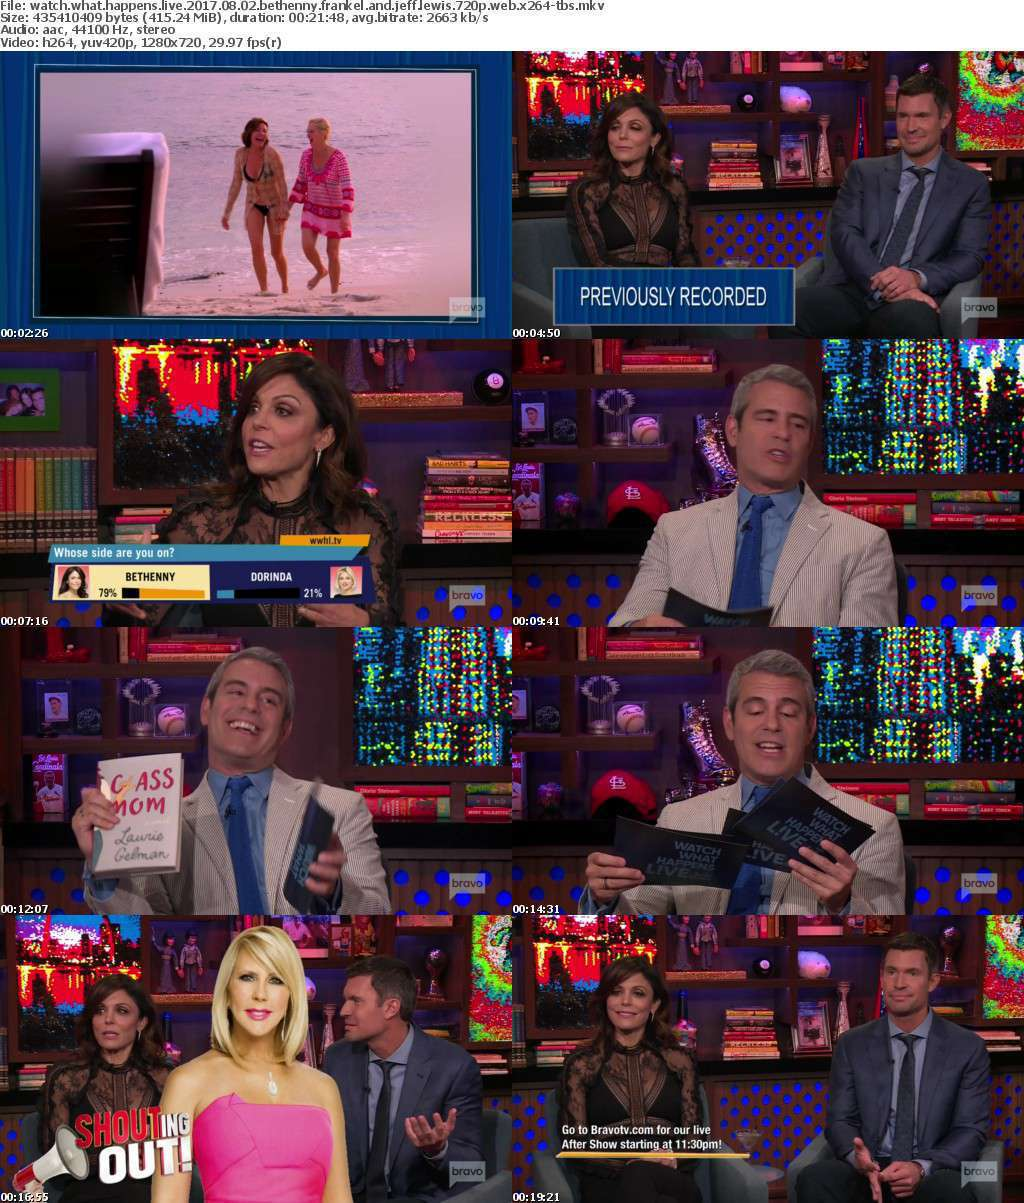 Watch What Happens Live 2017 08 02 Bethenny Frankel and Jeff Lewis 720p WEB x264-TBS